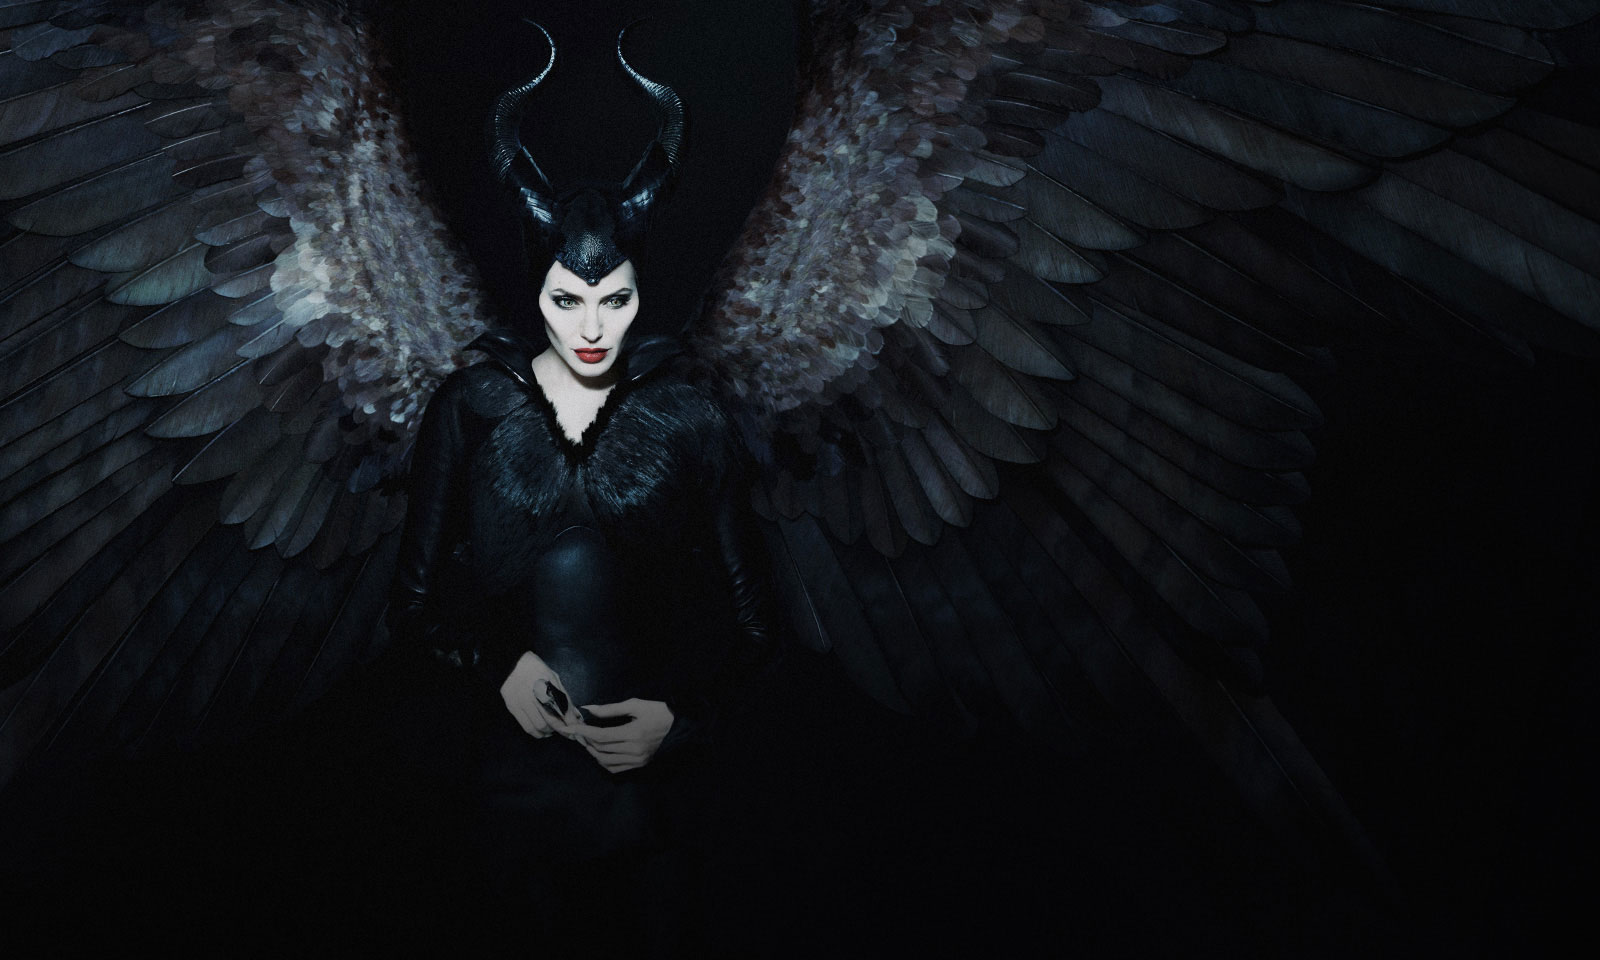 Maleficent Hd Wallpaper Wallpapers King